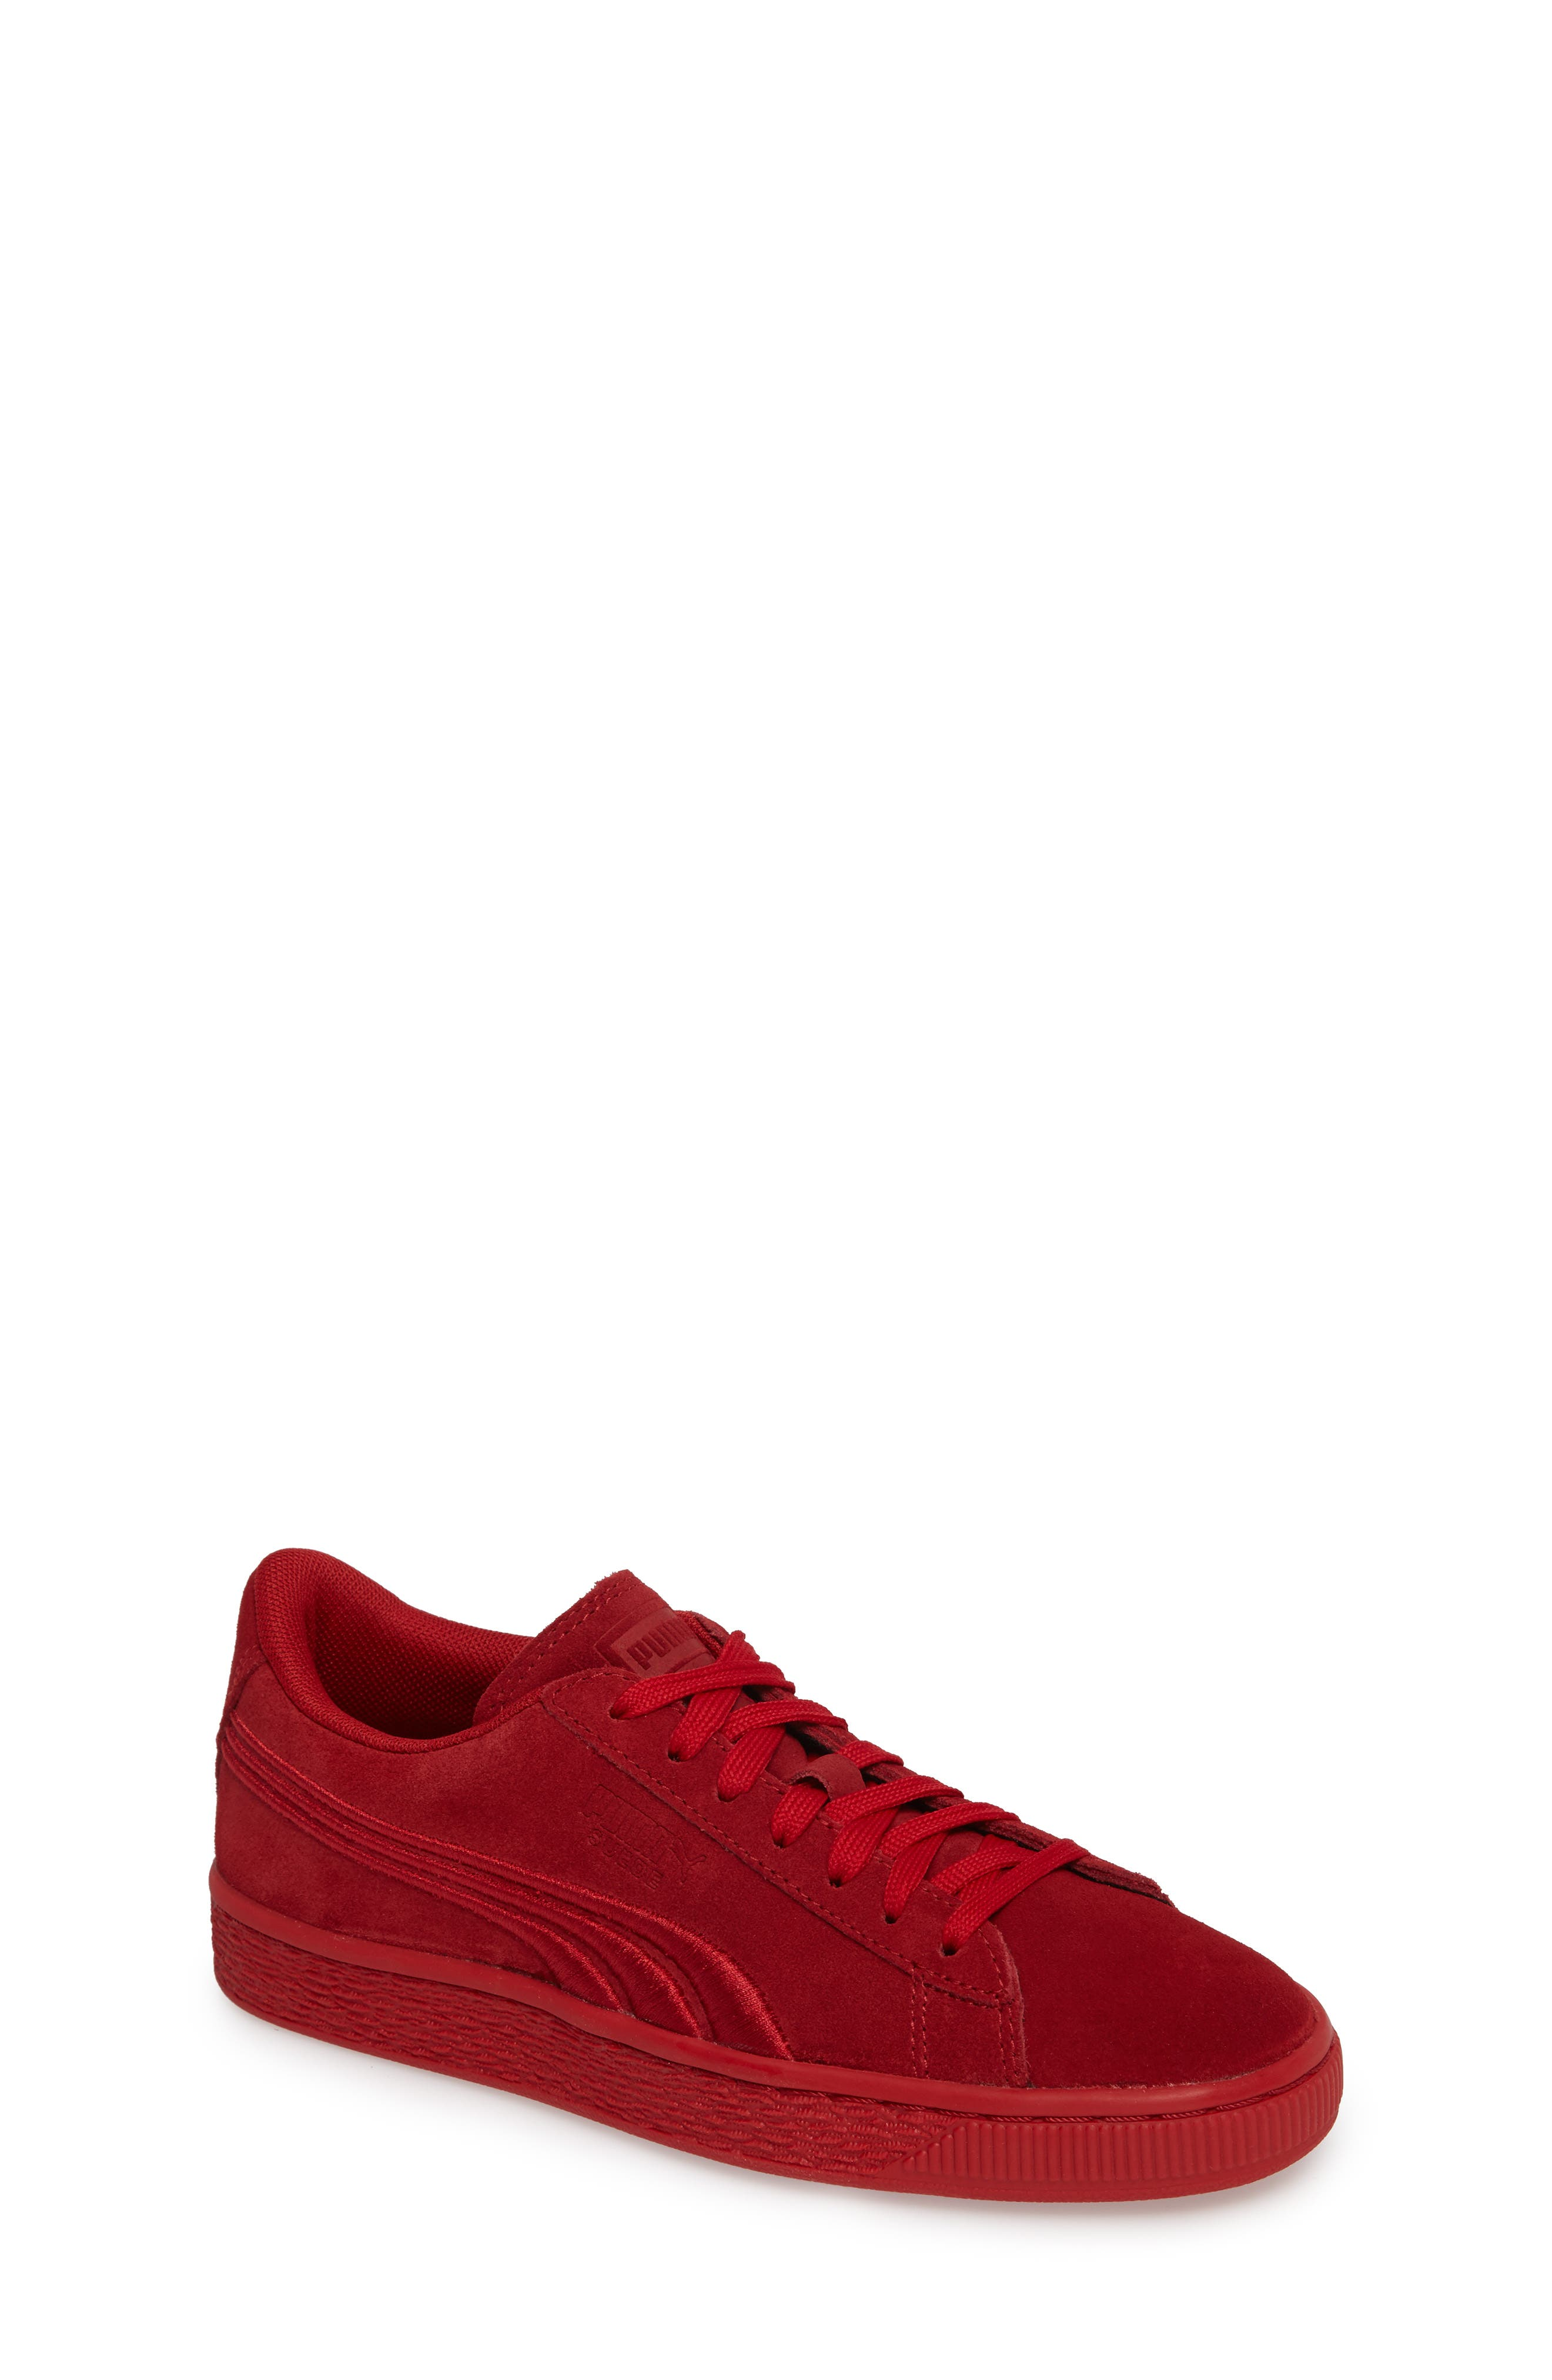 PUMA Suede Classic Badge Jr. Sneaker